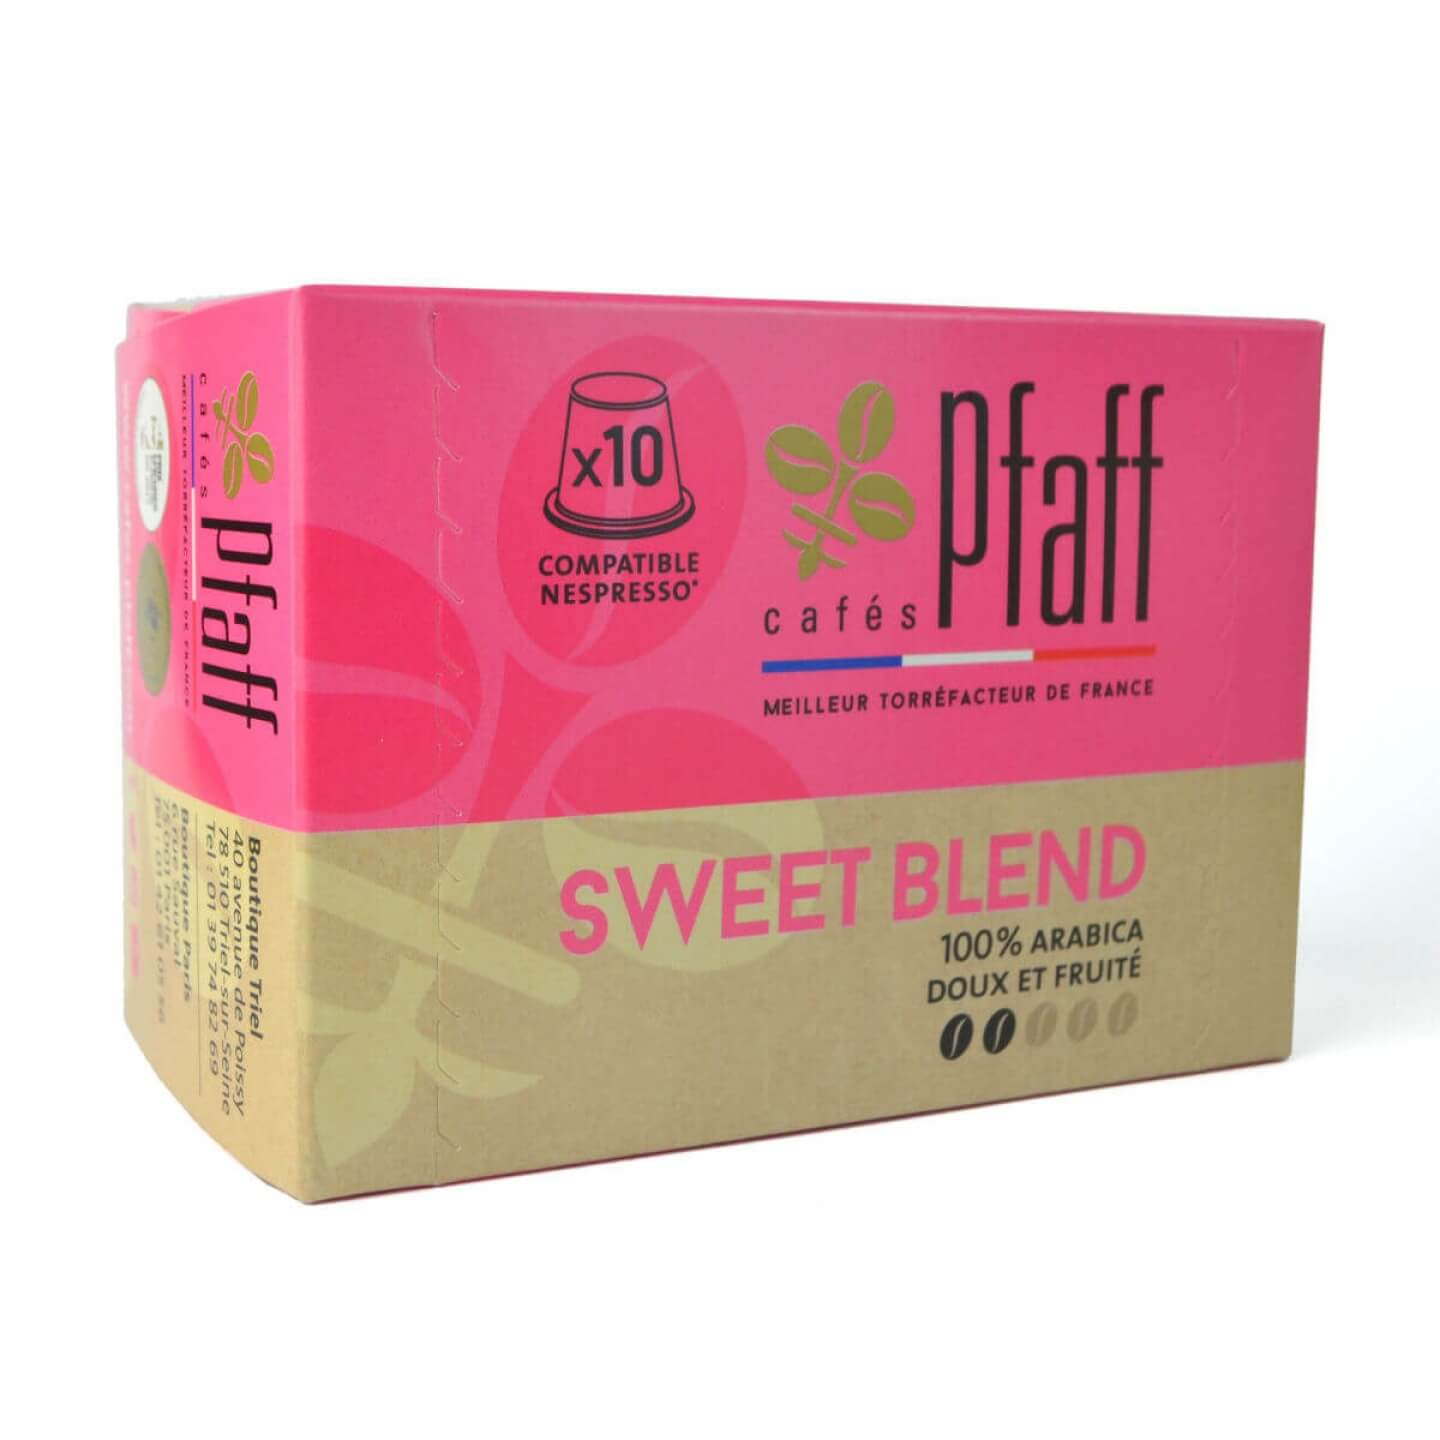 capsules sweet blend compatibles nespresso 2